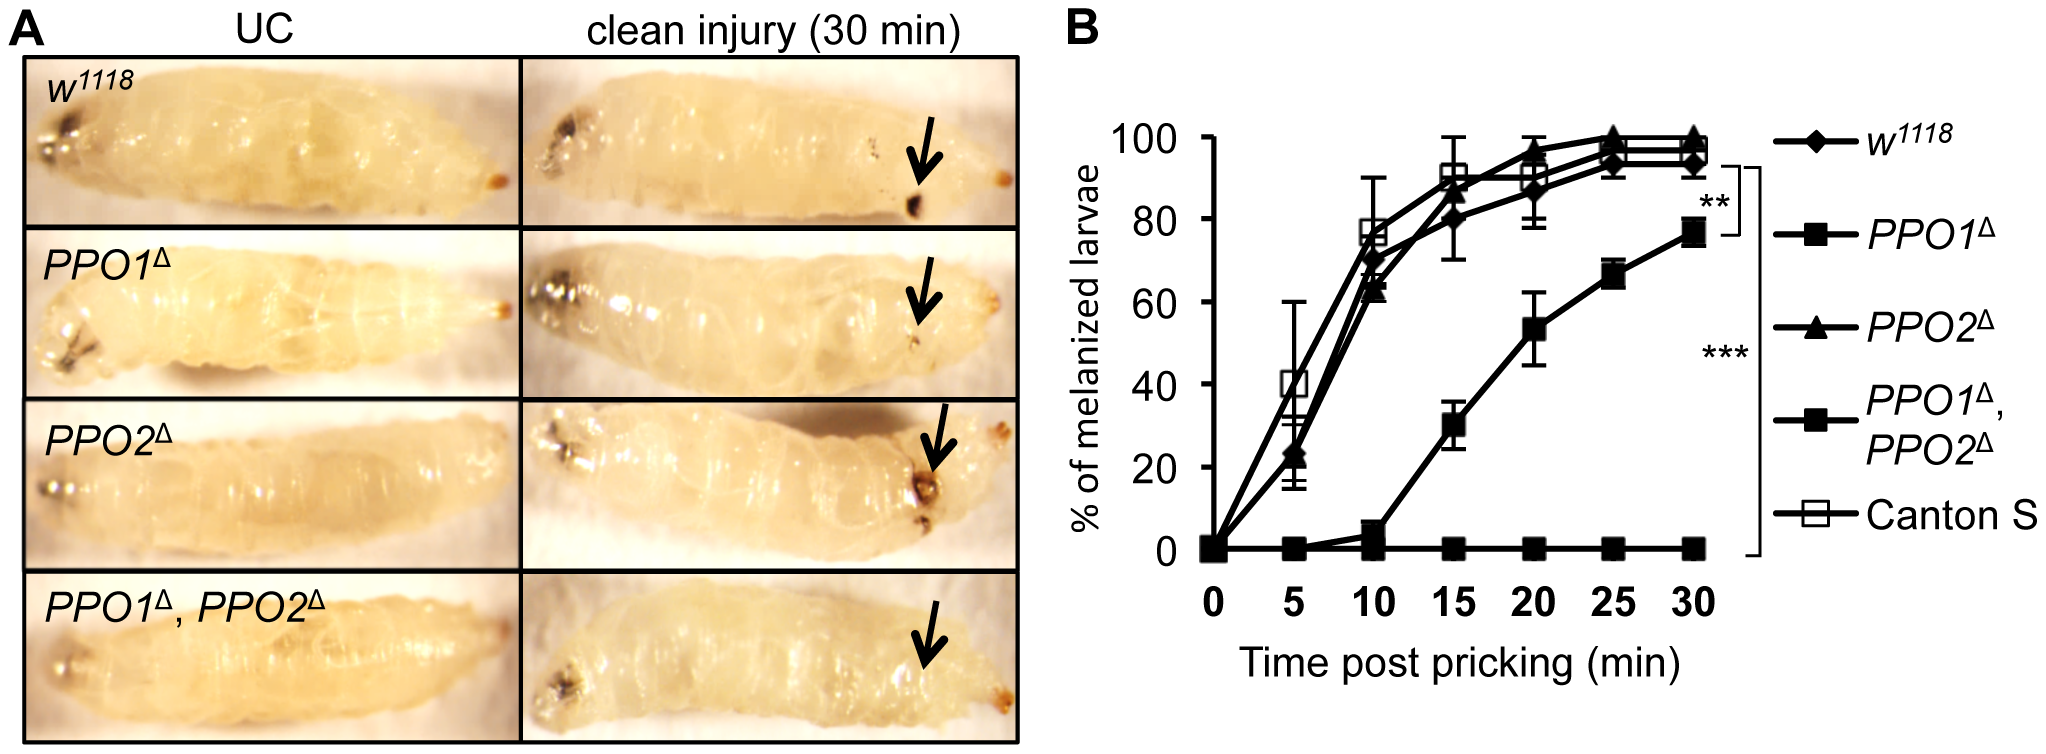 Both PPO1 and PPO2 contribute to injury related melanization in larvae.